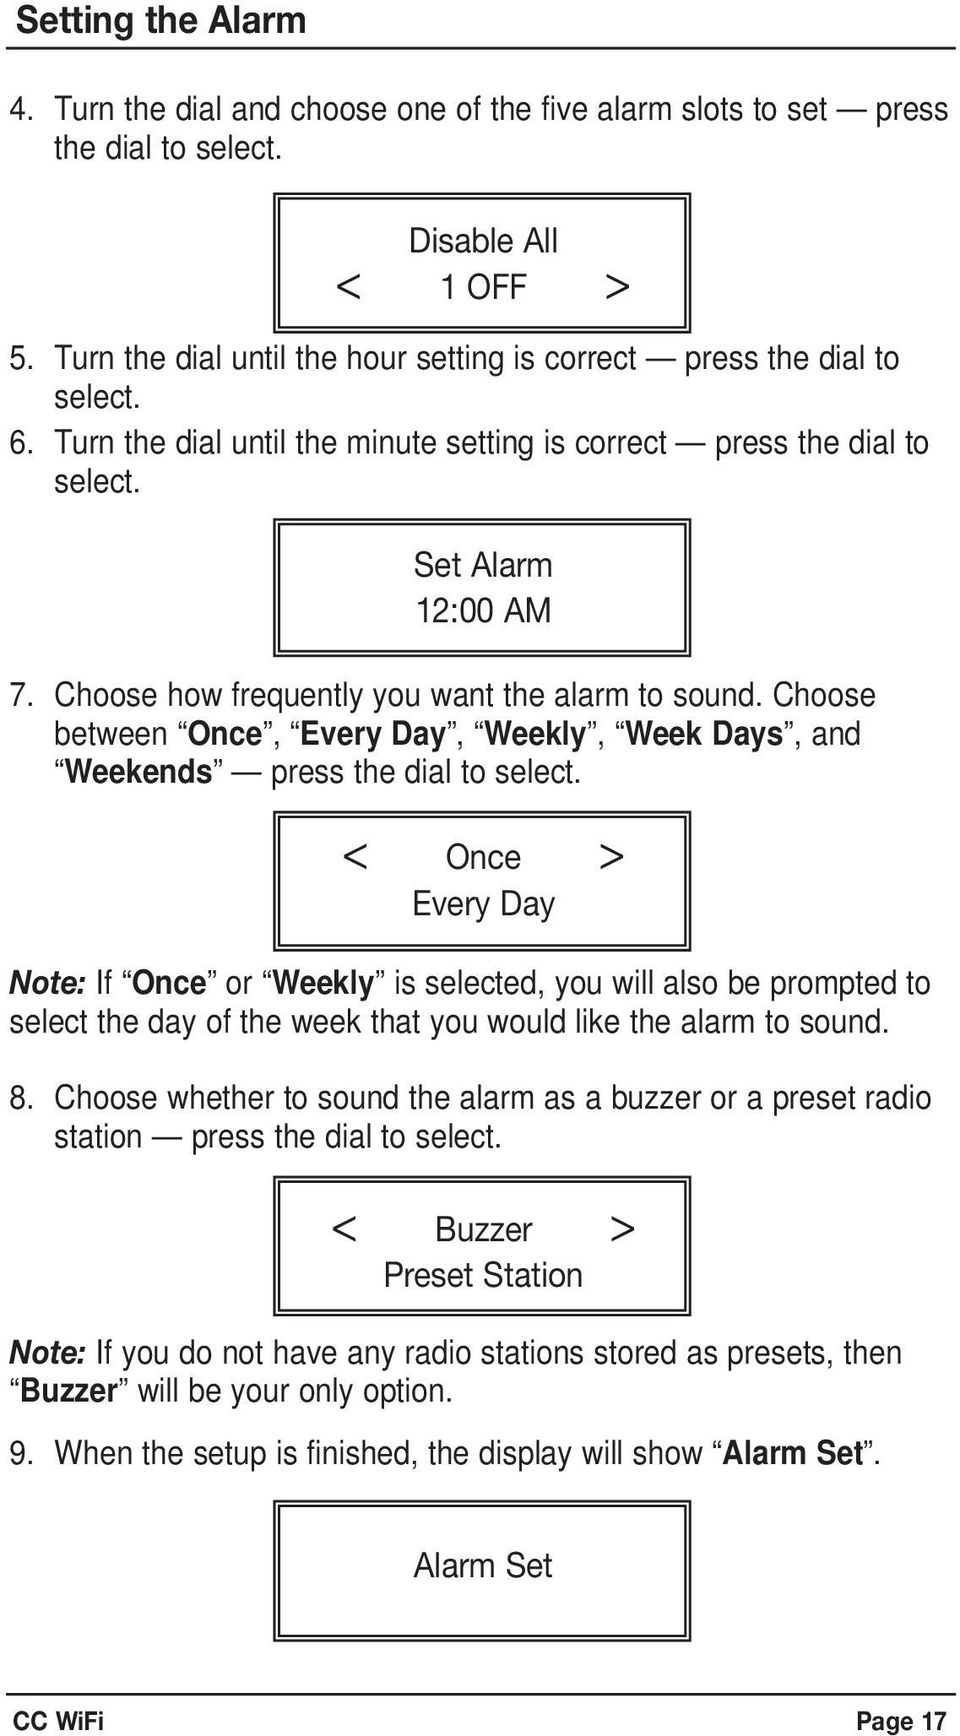 Choose how frequently you want the alarm to sound. Choose between Once, Every Day, Weekly, Week Days, and Weekends press the dial to select.